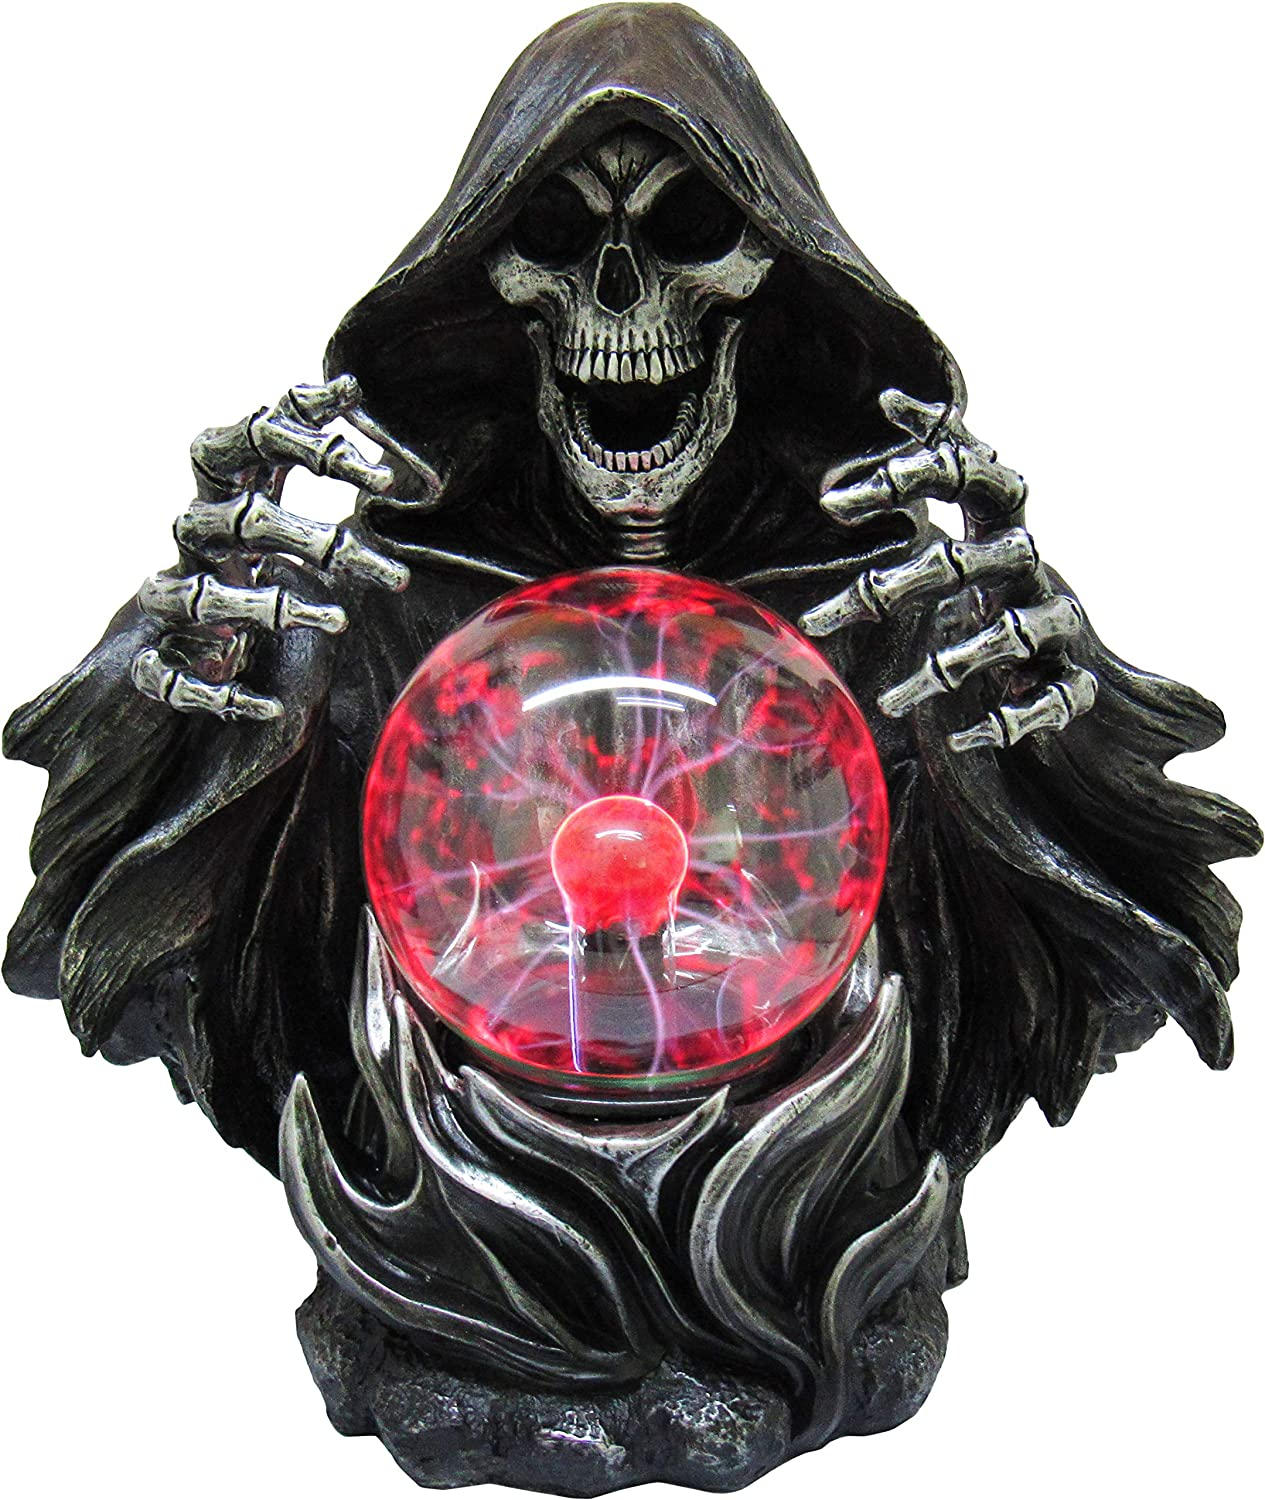 DWK - Sinister Scryer - Grim Reaper Death Gothic Skeleton Statue with Plasma Tesla Ball Lamp for Home and Office, 11-inch